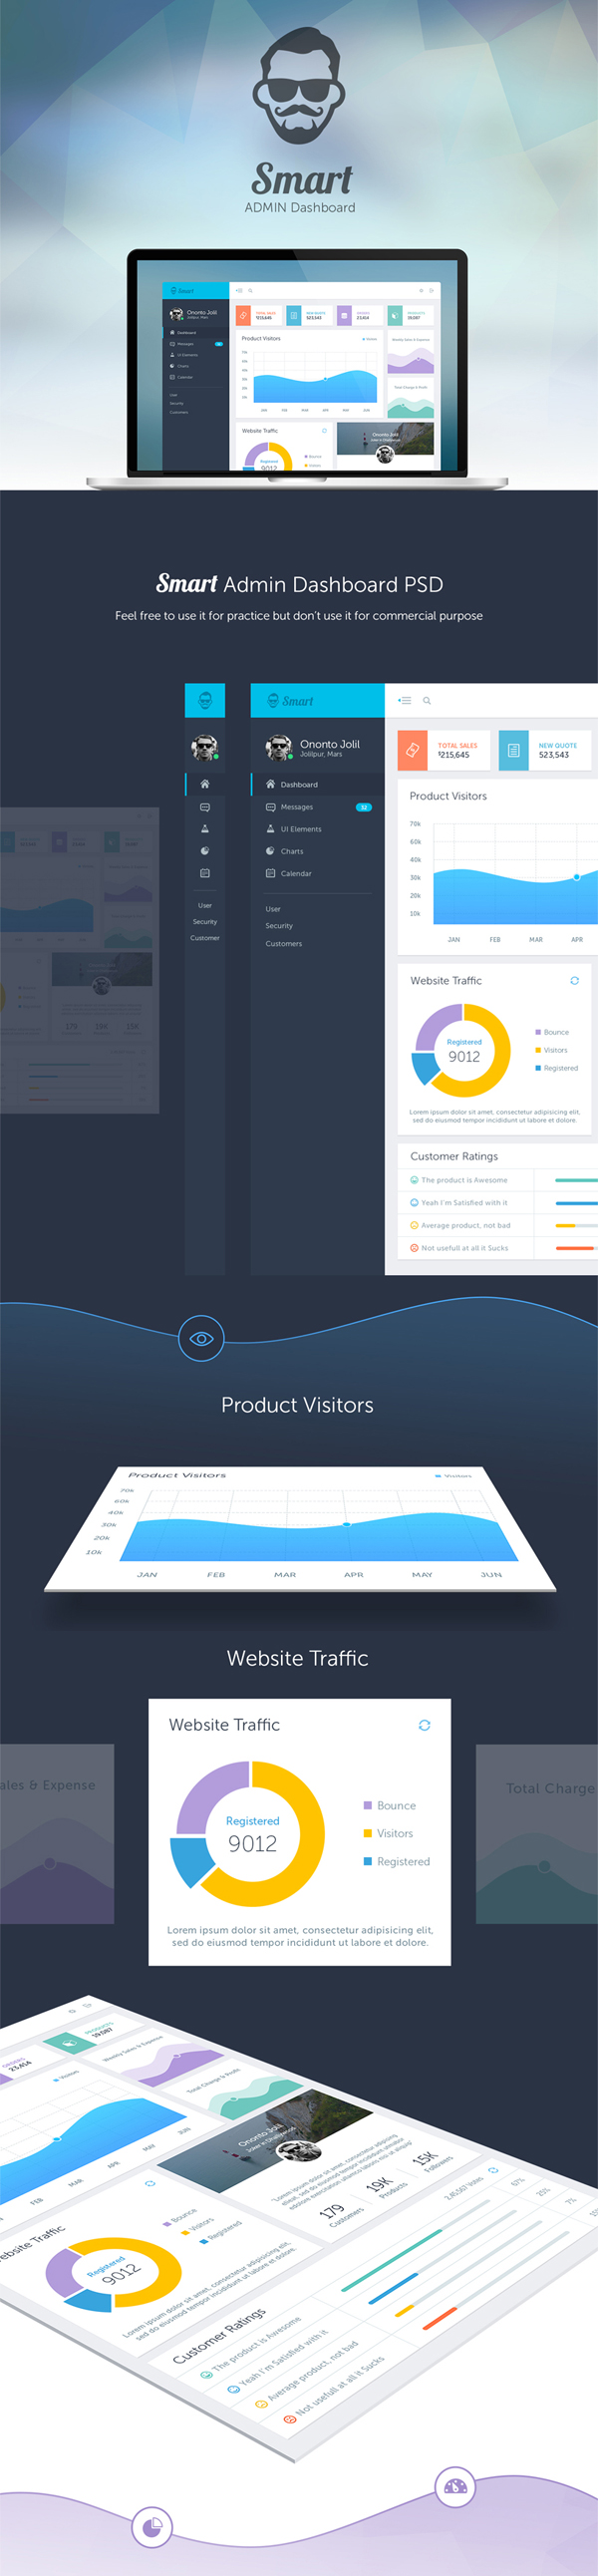 Smart Admin Dashboard PSD Template